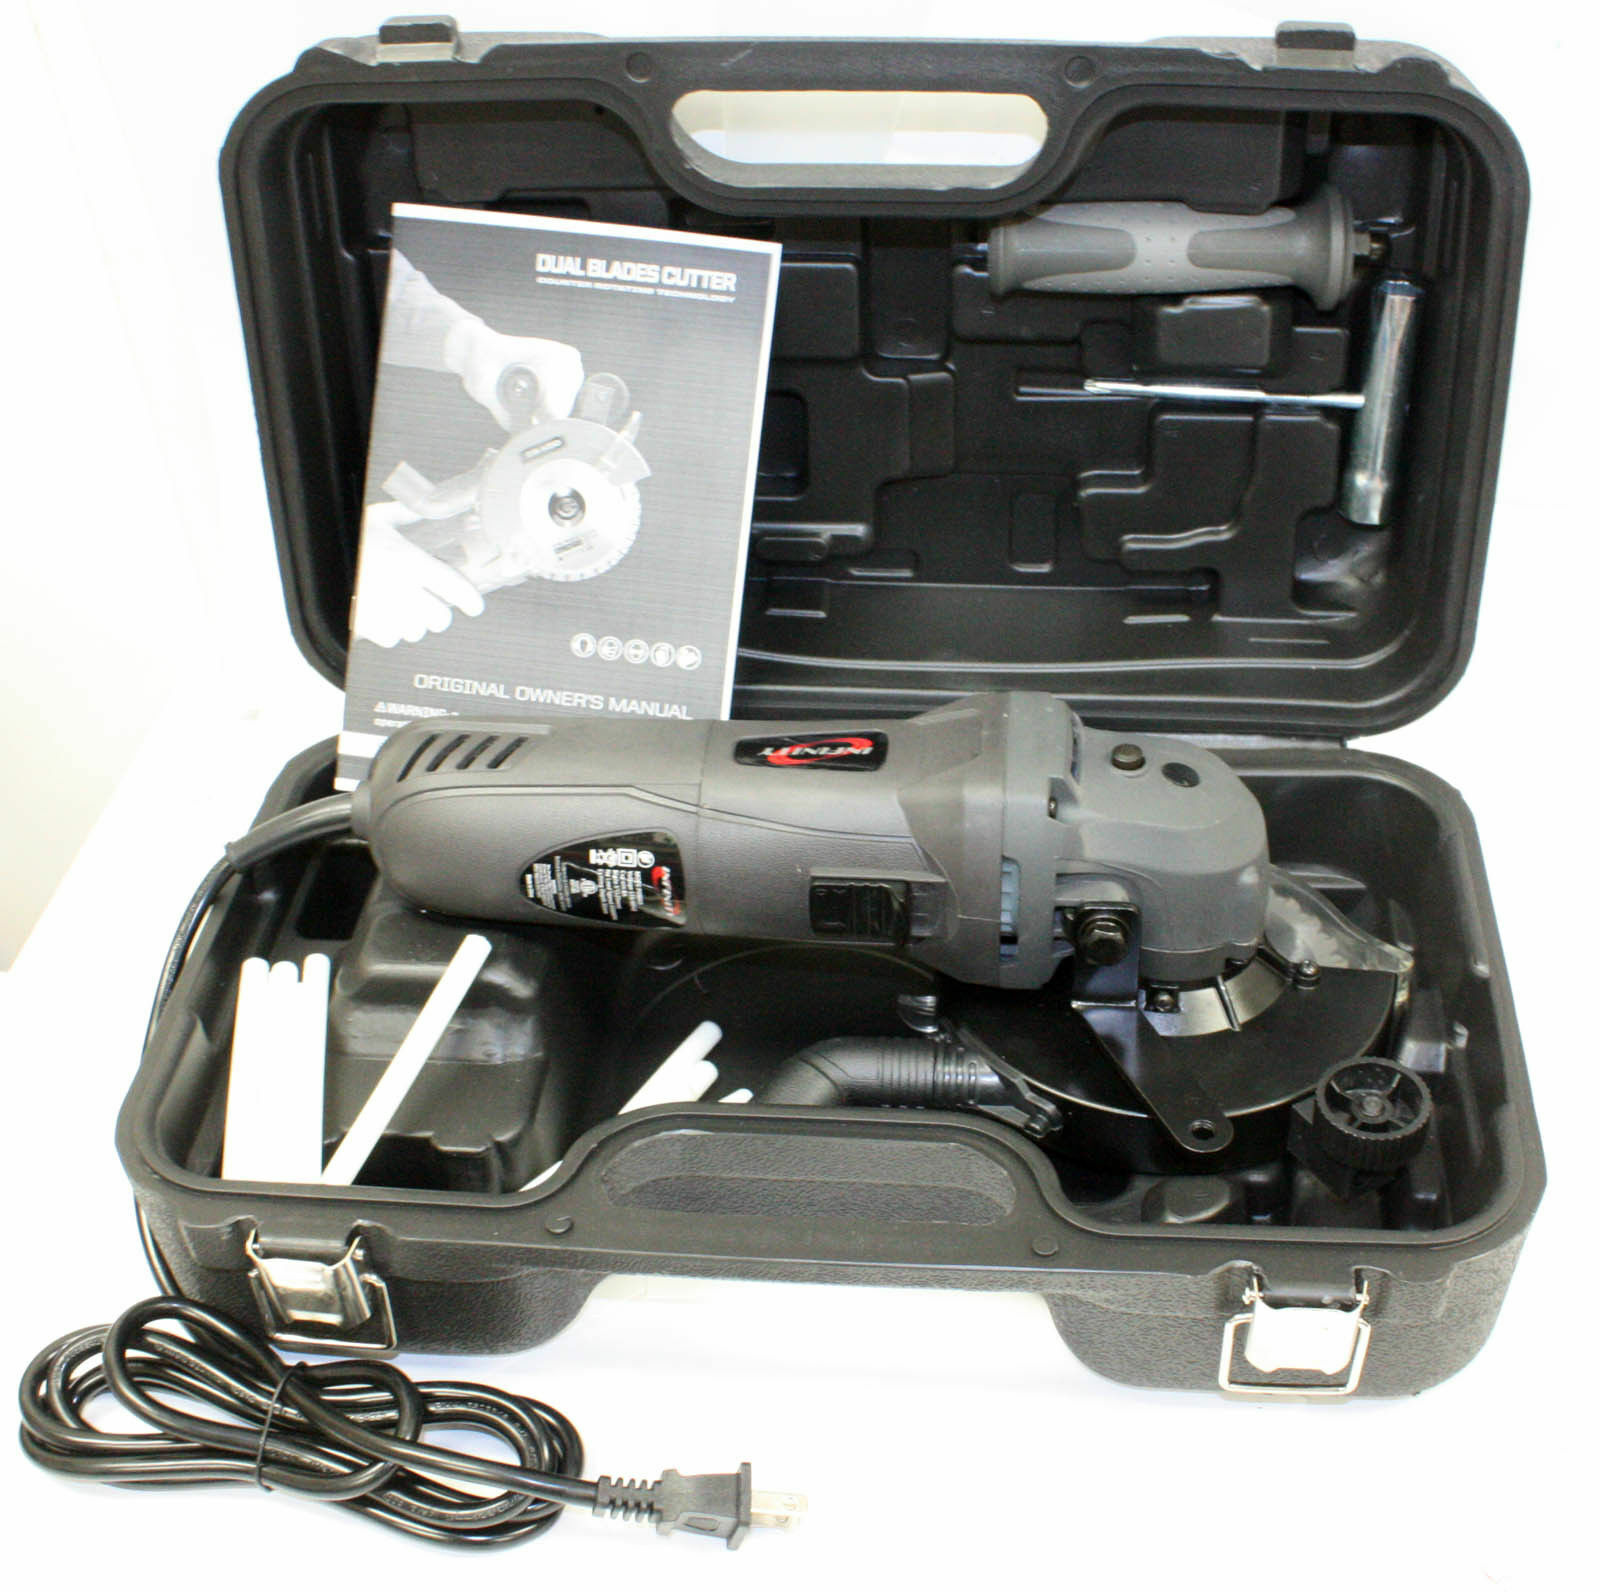 Dual Blades Electric Hand Held Circular Cutter Cut Saw And 5  Double Blades